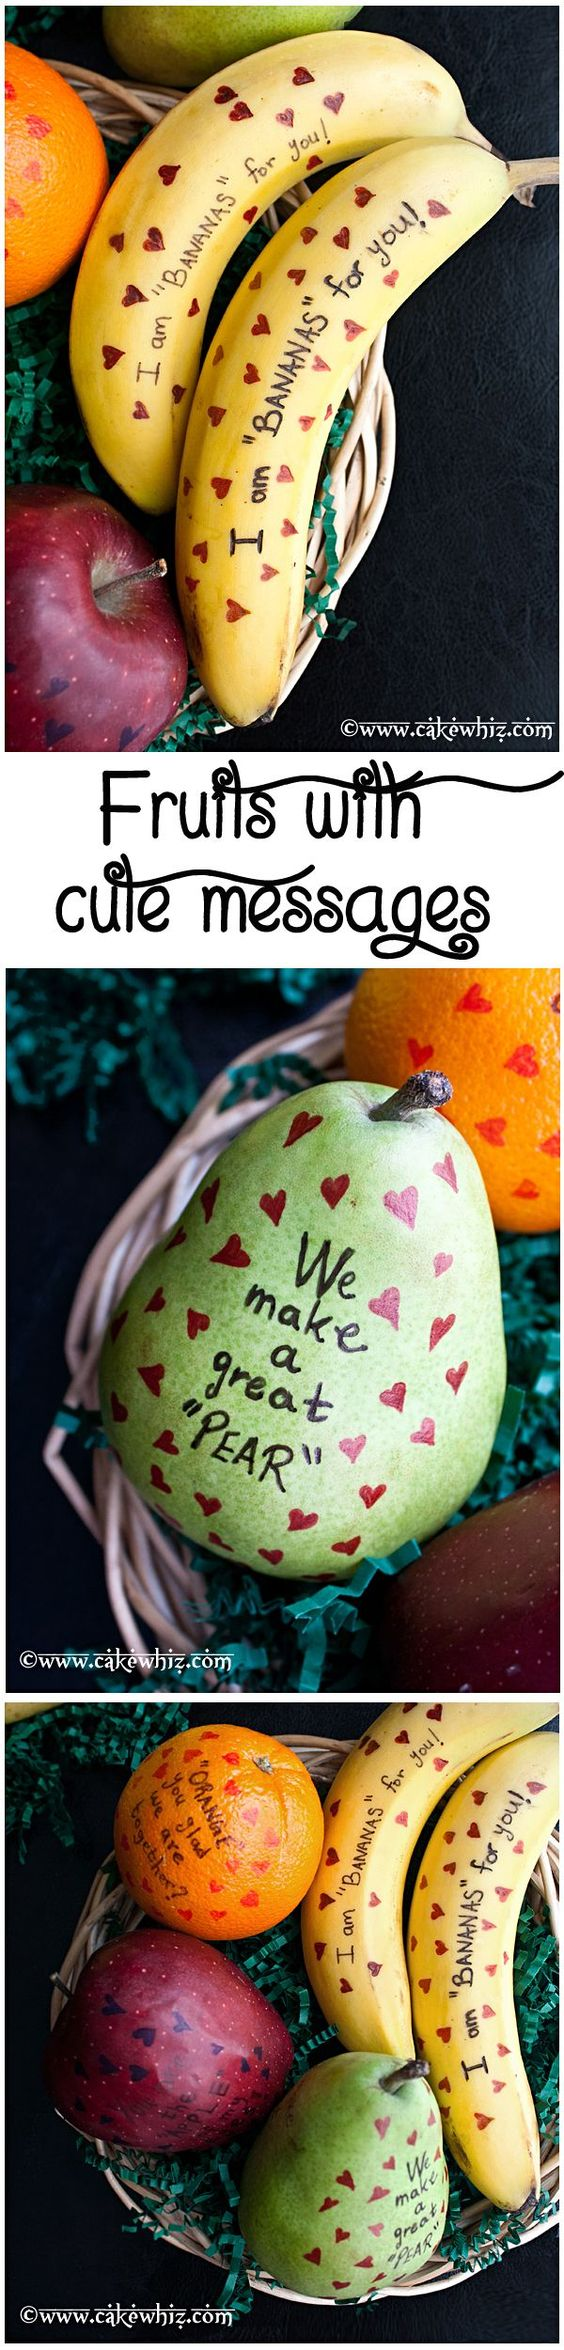 cheesie-diy-valentines-day-ideas-for-him-or-her-8